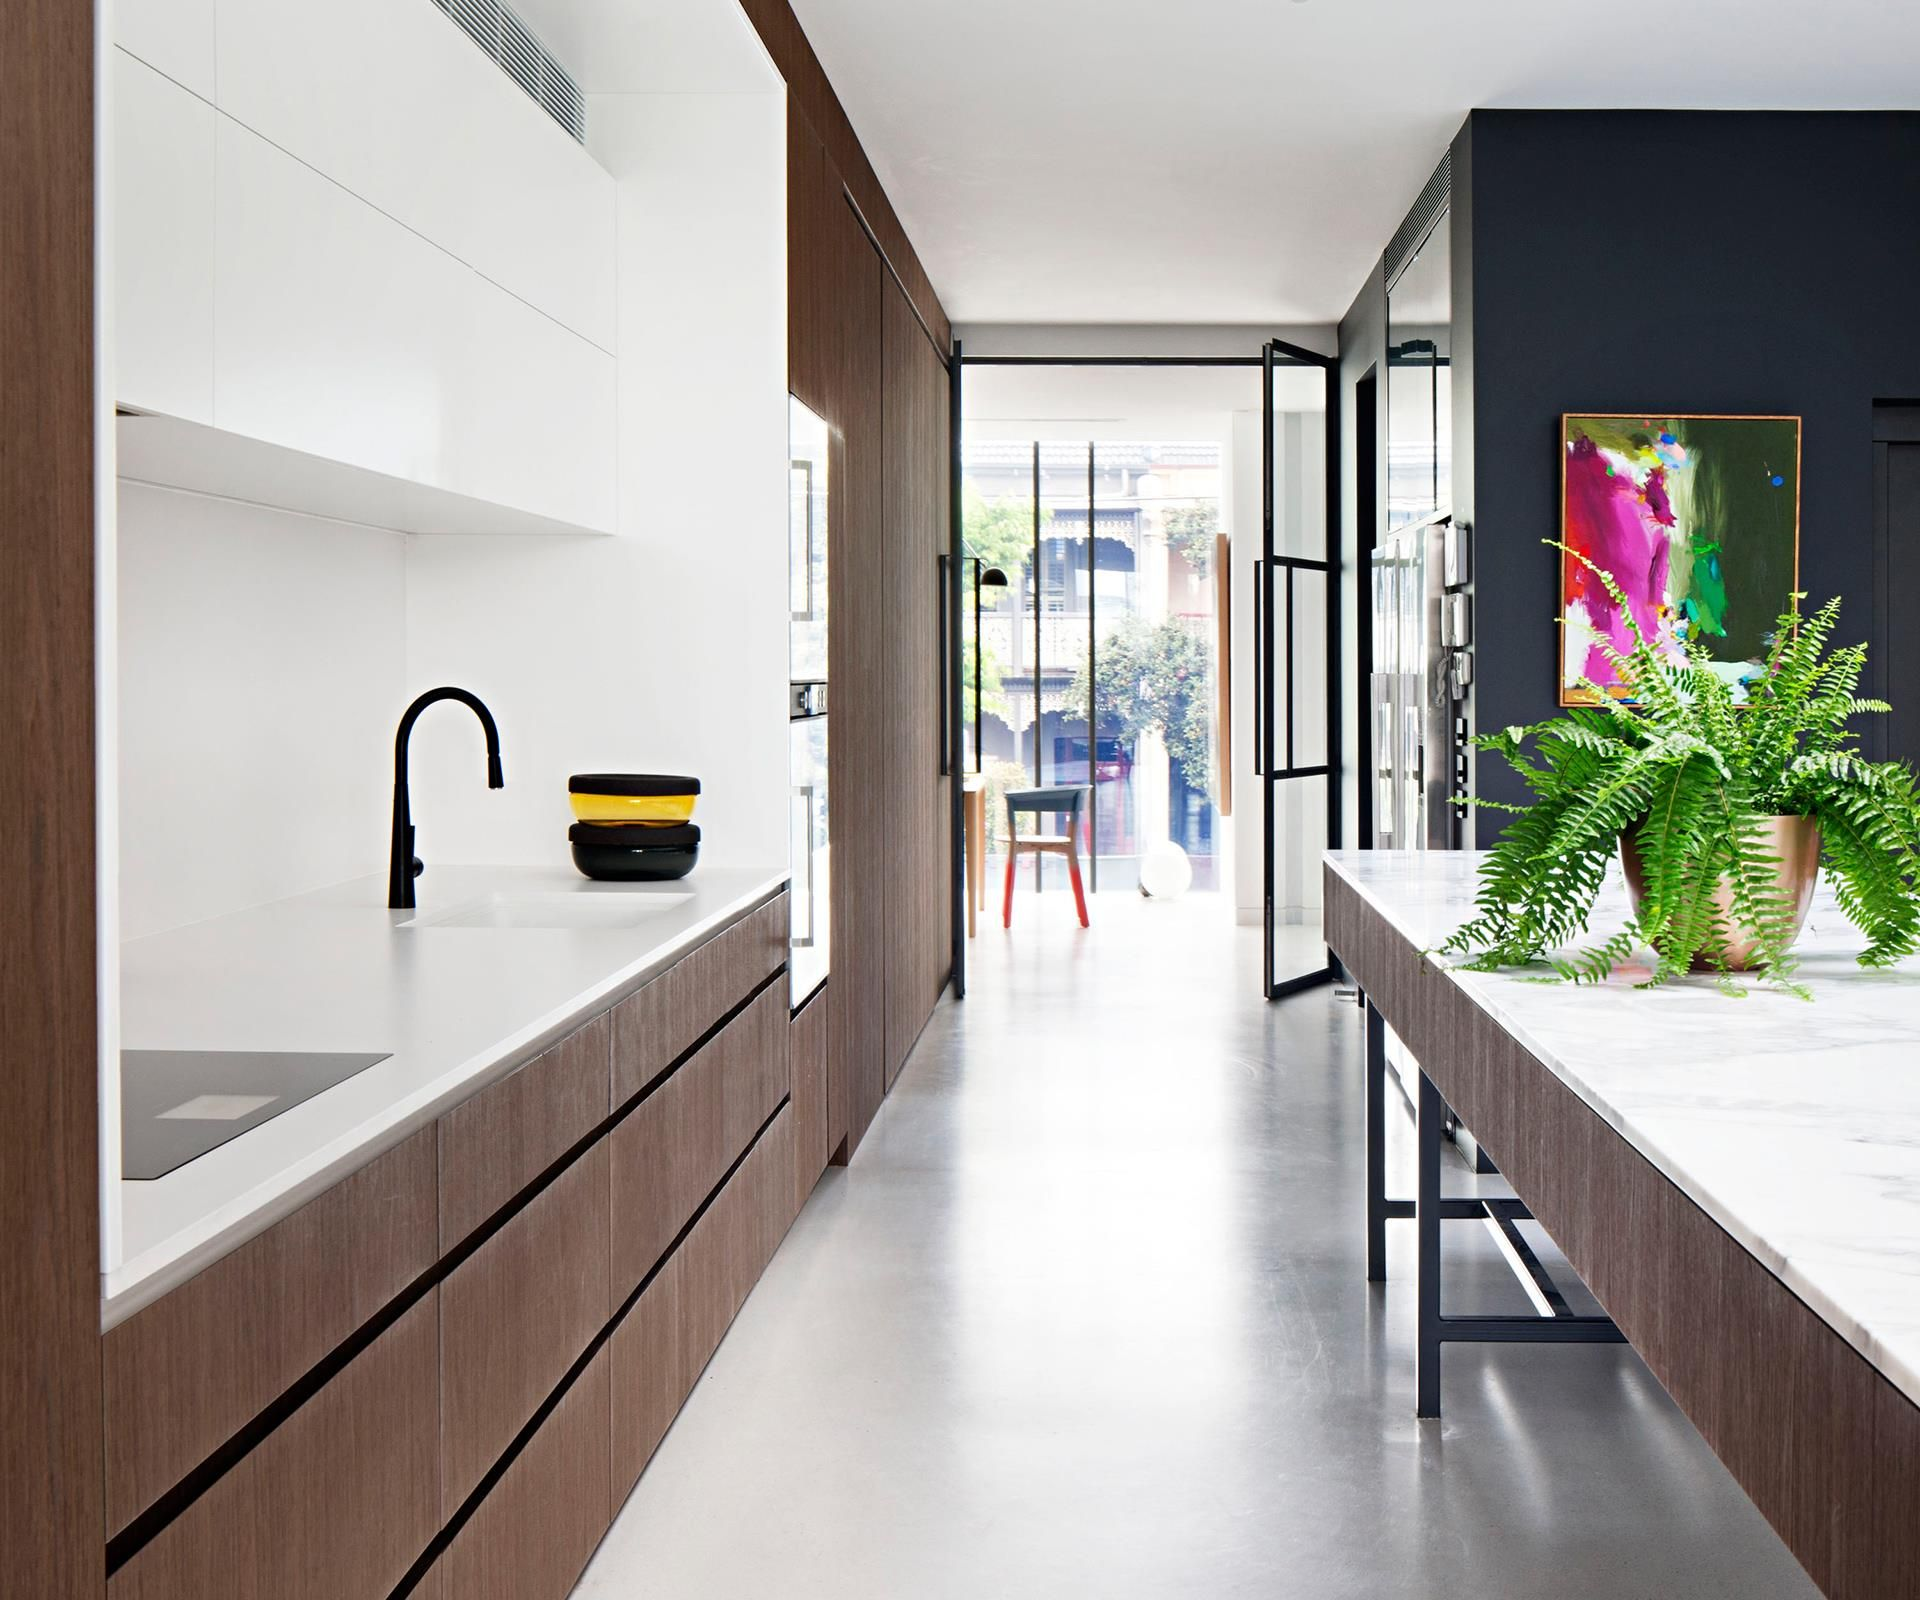 Wellington Street Residence By Matt Gibson Architecture Design Vote For This Project In The Readers Choice Belle Coco Republic Interior Awards